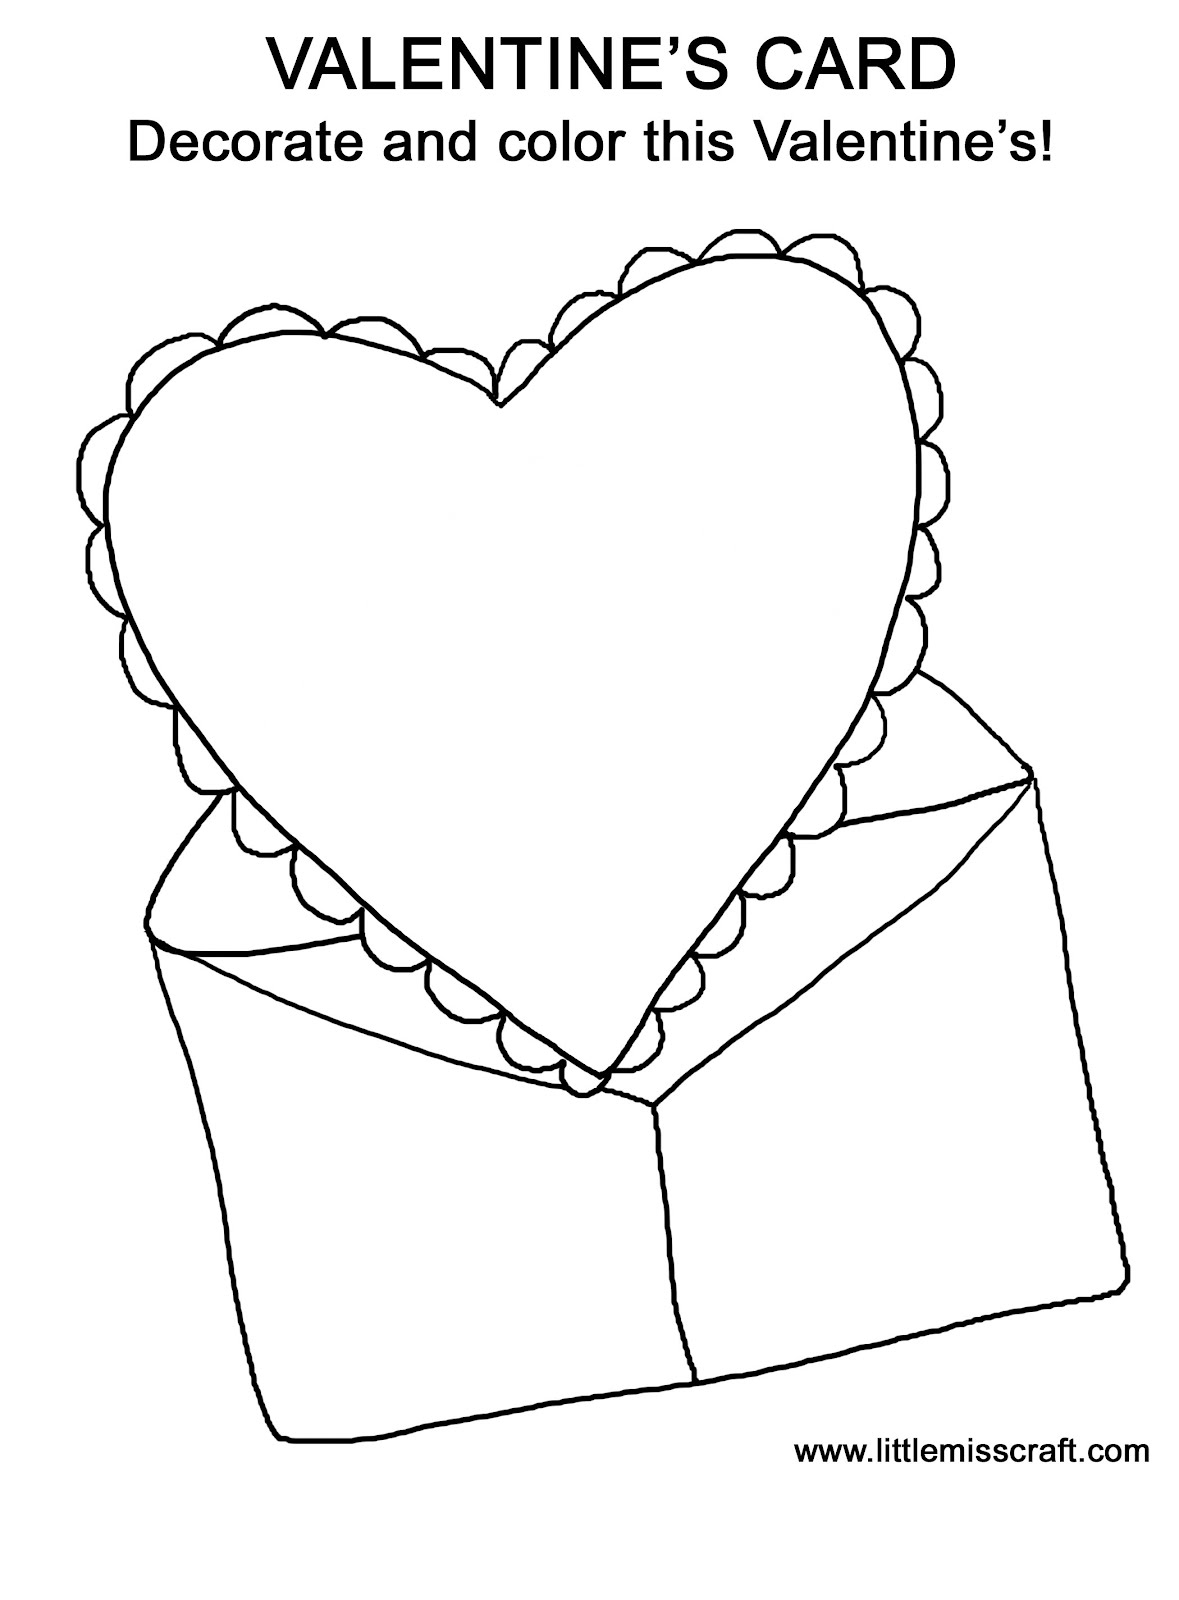 valentines day cards coloring pages - photo#11